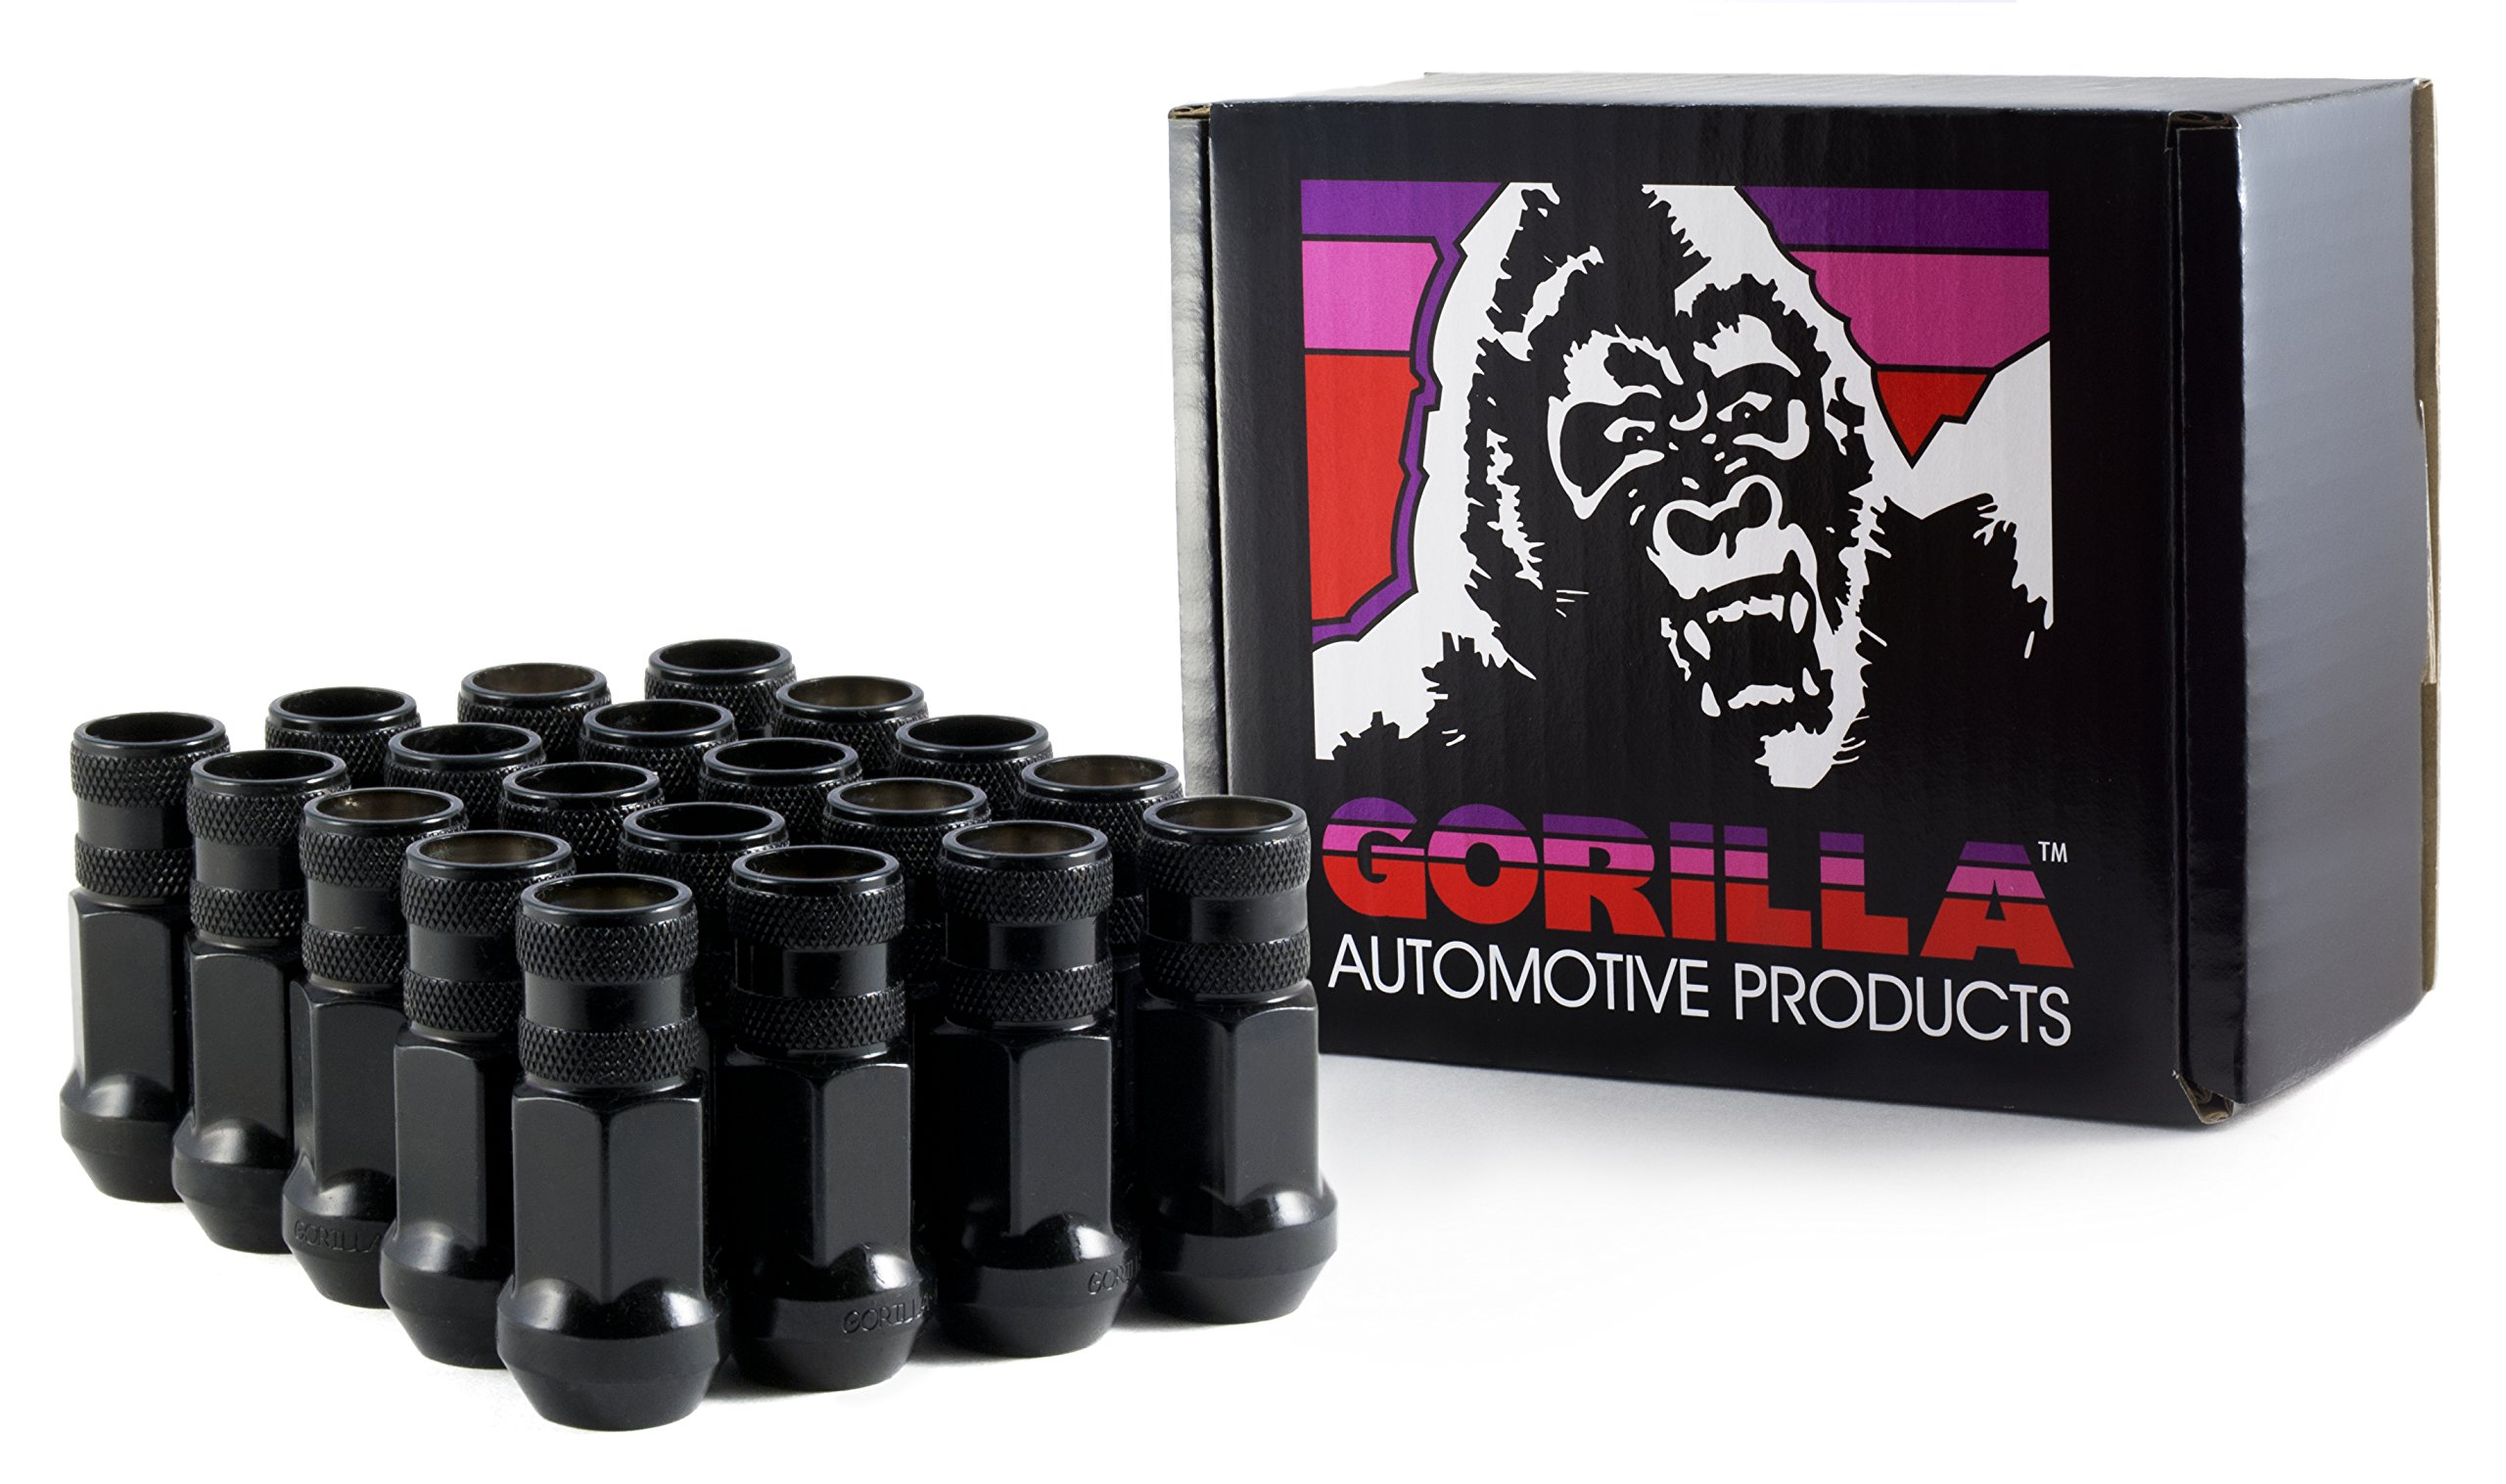 Gorilla Automotive 45088BC-20 Black 1/2'' Thread Size Forged Steel Chrome Finish Open End Lug Nut, (Pack of 20)